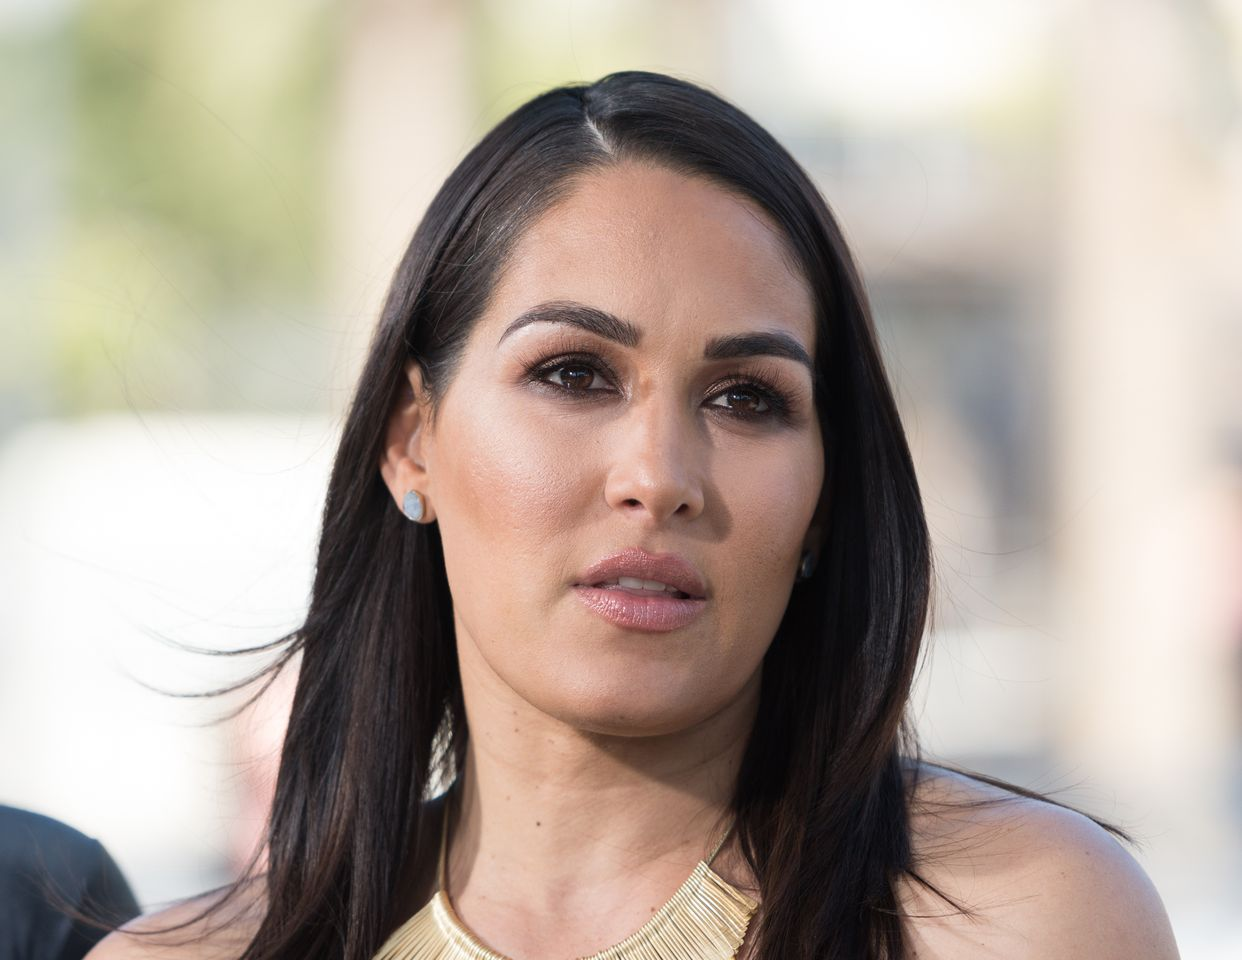 """Brie Bella at """"Extra,"""" Universal Studios Hollywood on October 26, 2017 in Universal City, California. 